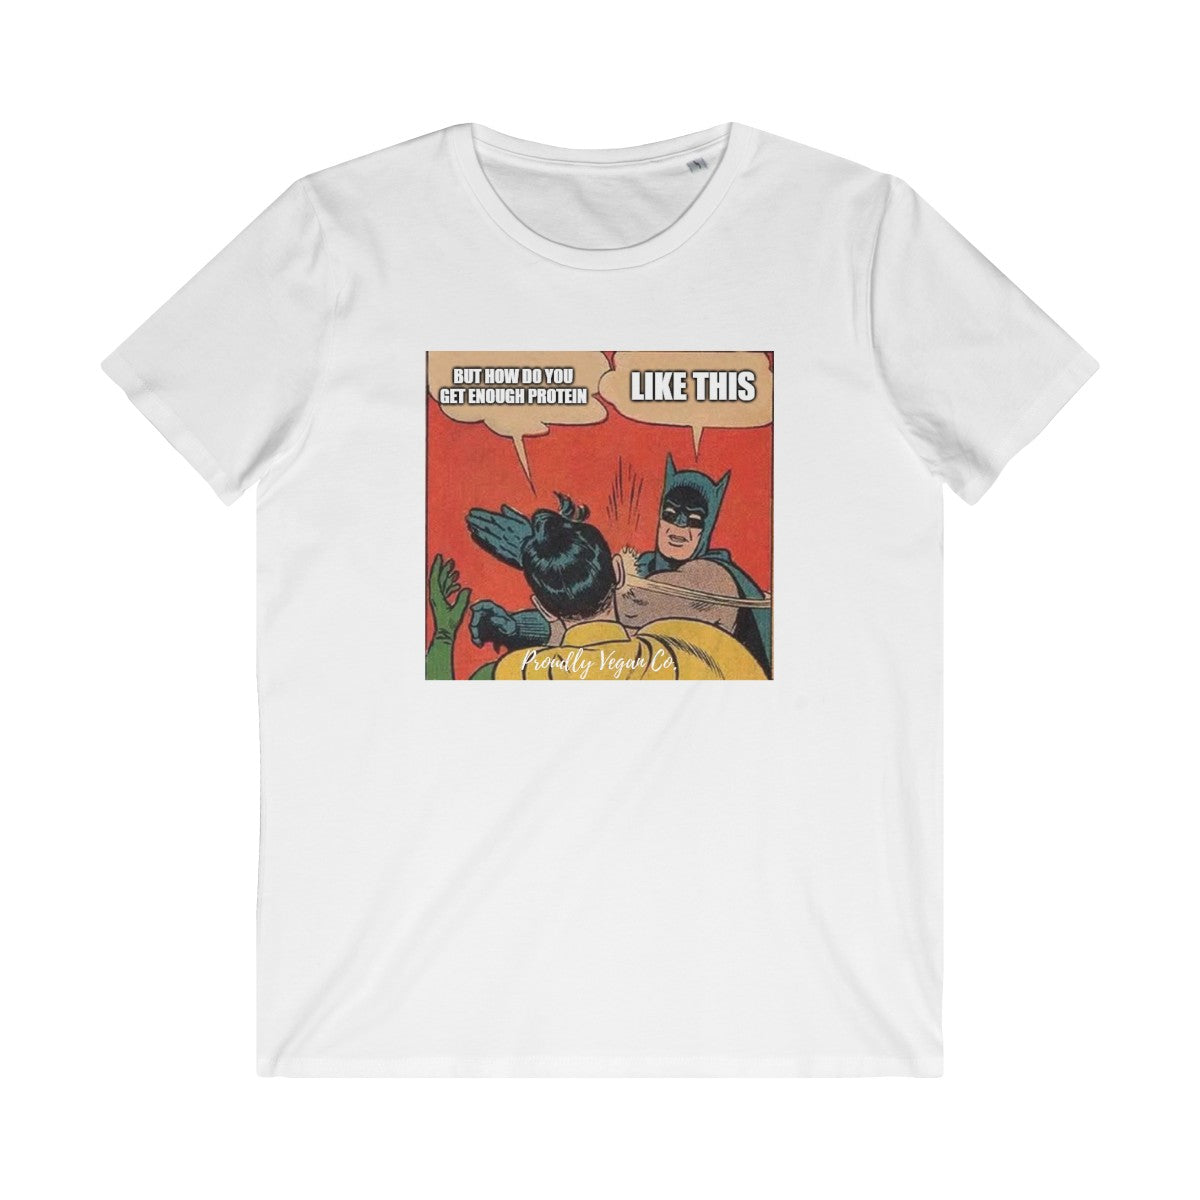 Vegan Memes Organic Cotton Unisex T-shirt Eco-Friendly Recyclable Fair Trade - Proudly Vegan Co.